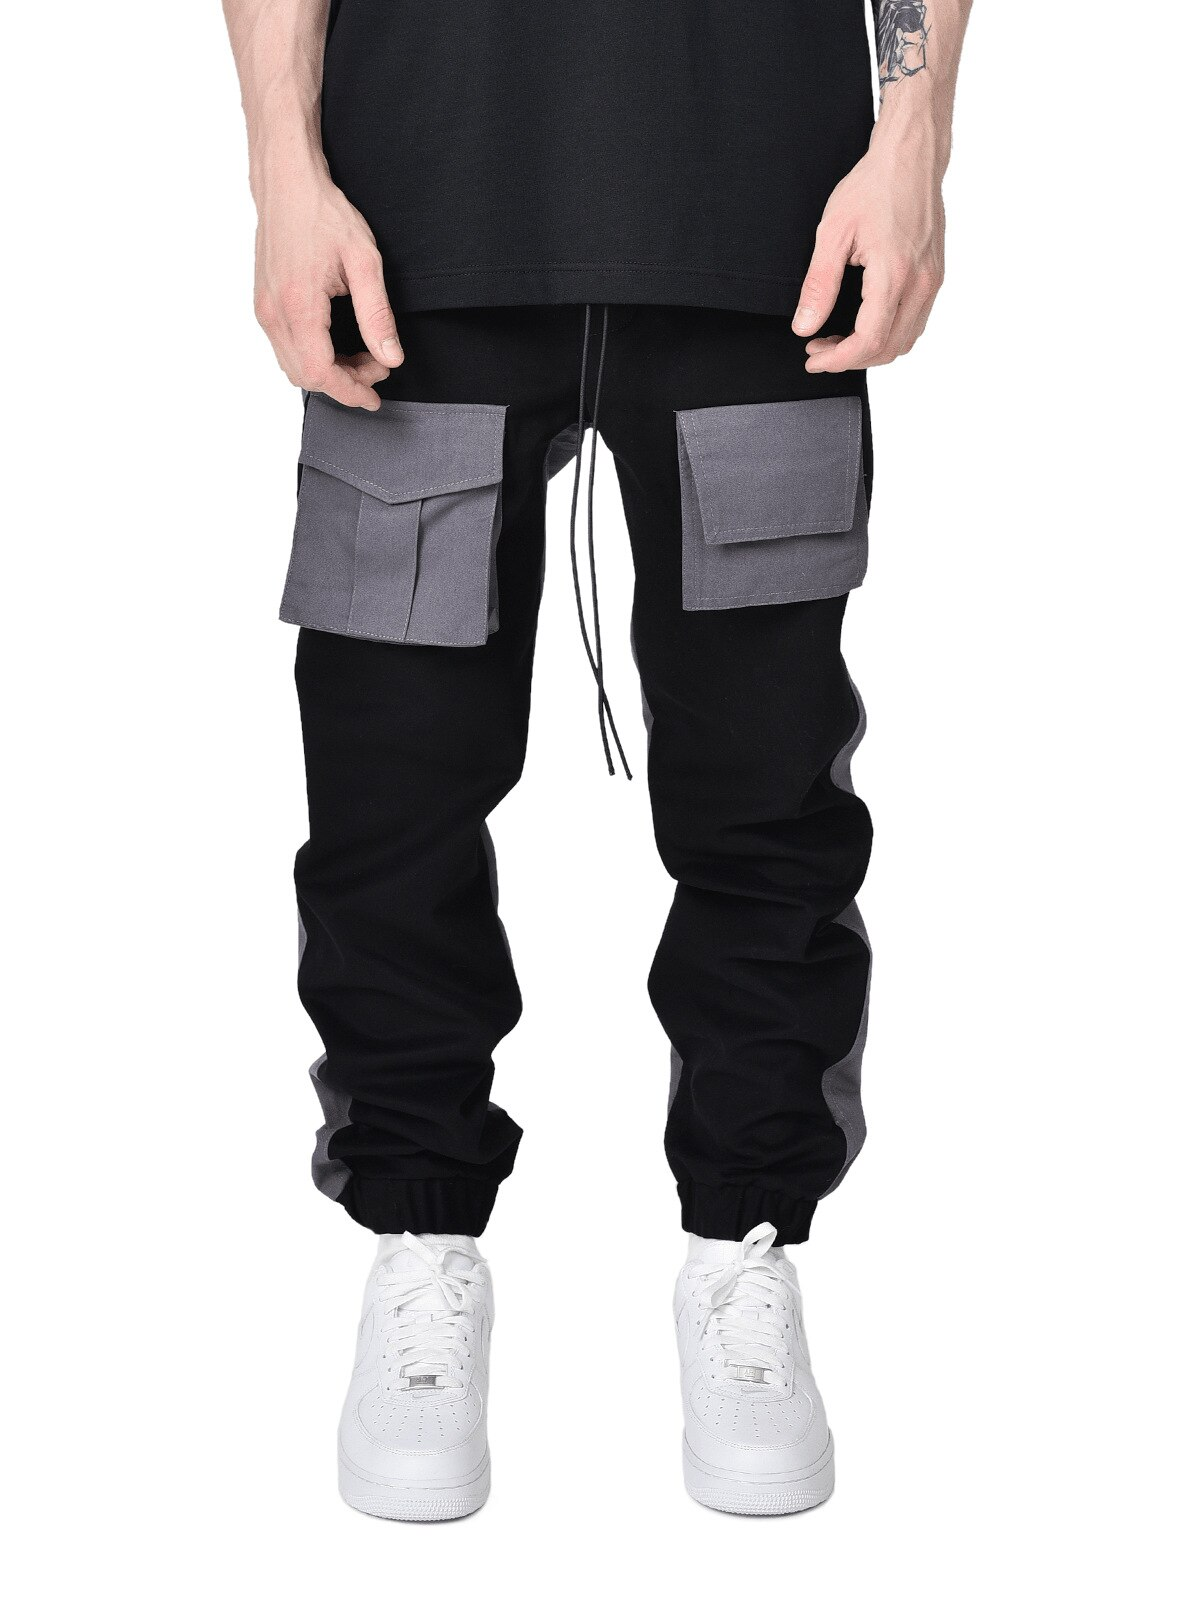 New Autumn Men Pants Hip Hop Harem Joggers Pants Male Trousers Mens Solid Multi-pocket Cargo Pants Skinny Fit Sweatpants 2020